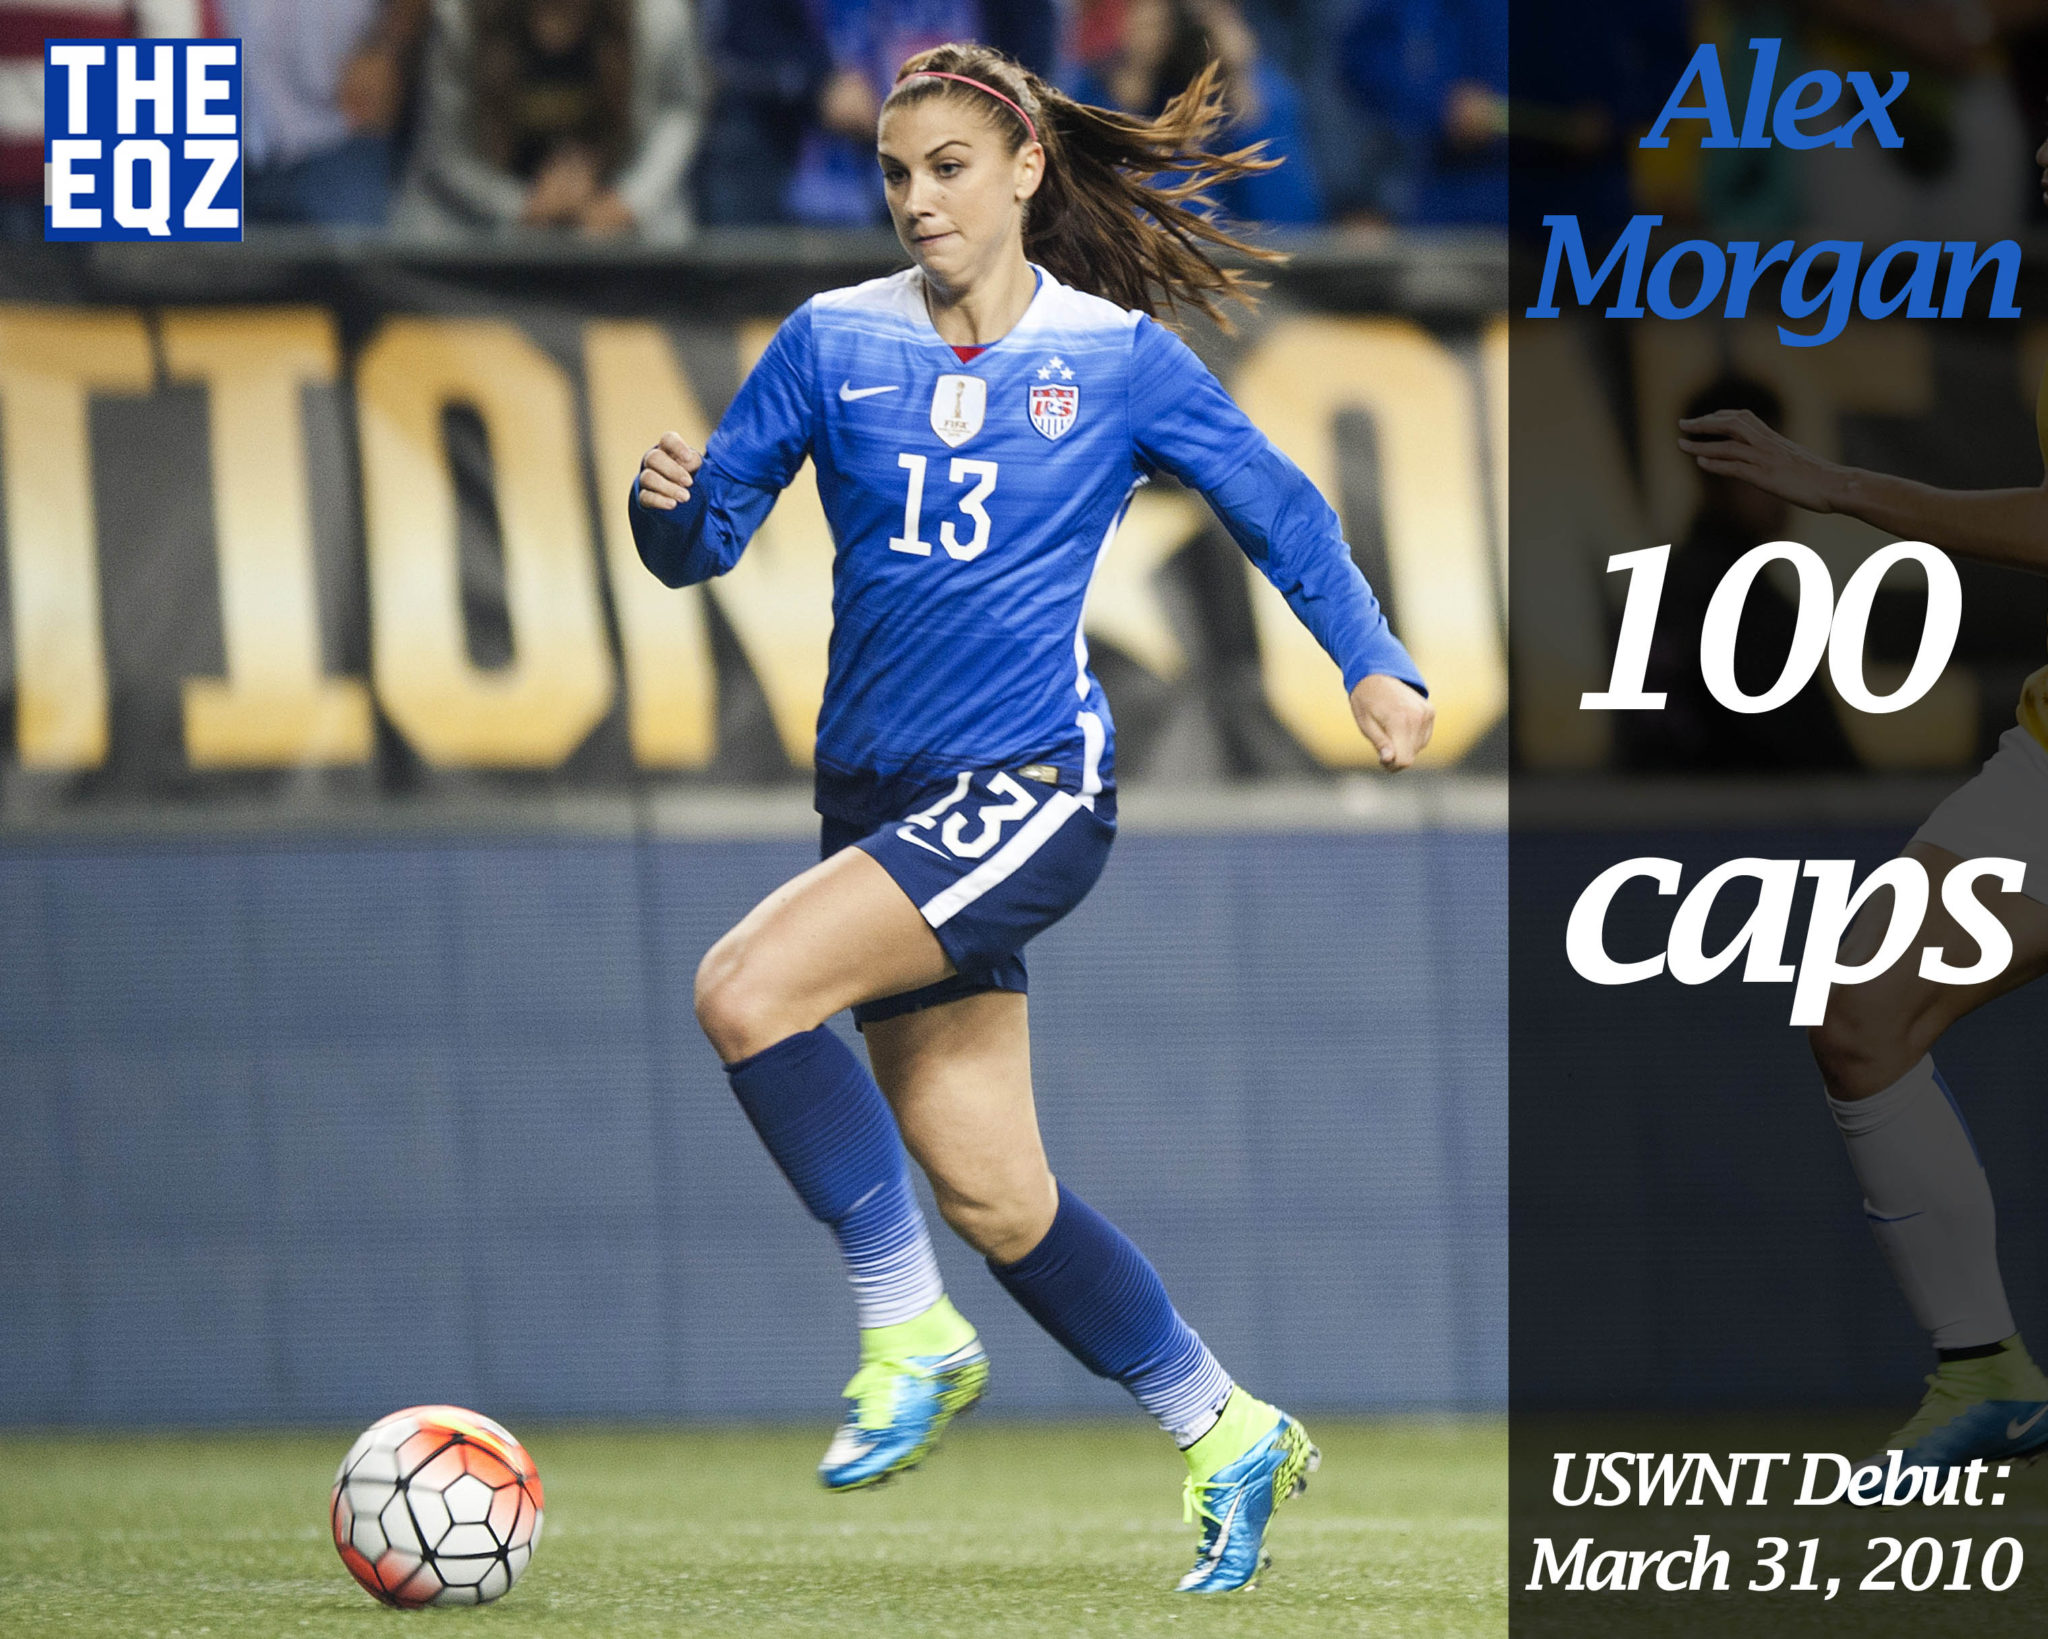 Alex Morgan becomes the 34th USWNT player to earn 100 senior caps. (Photo Copyright Patricia Giobetti for The Equalizer)